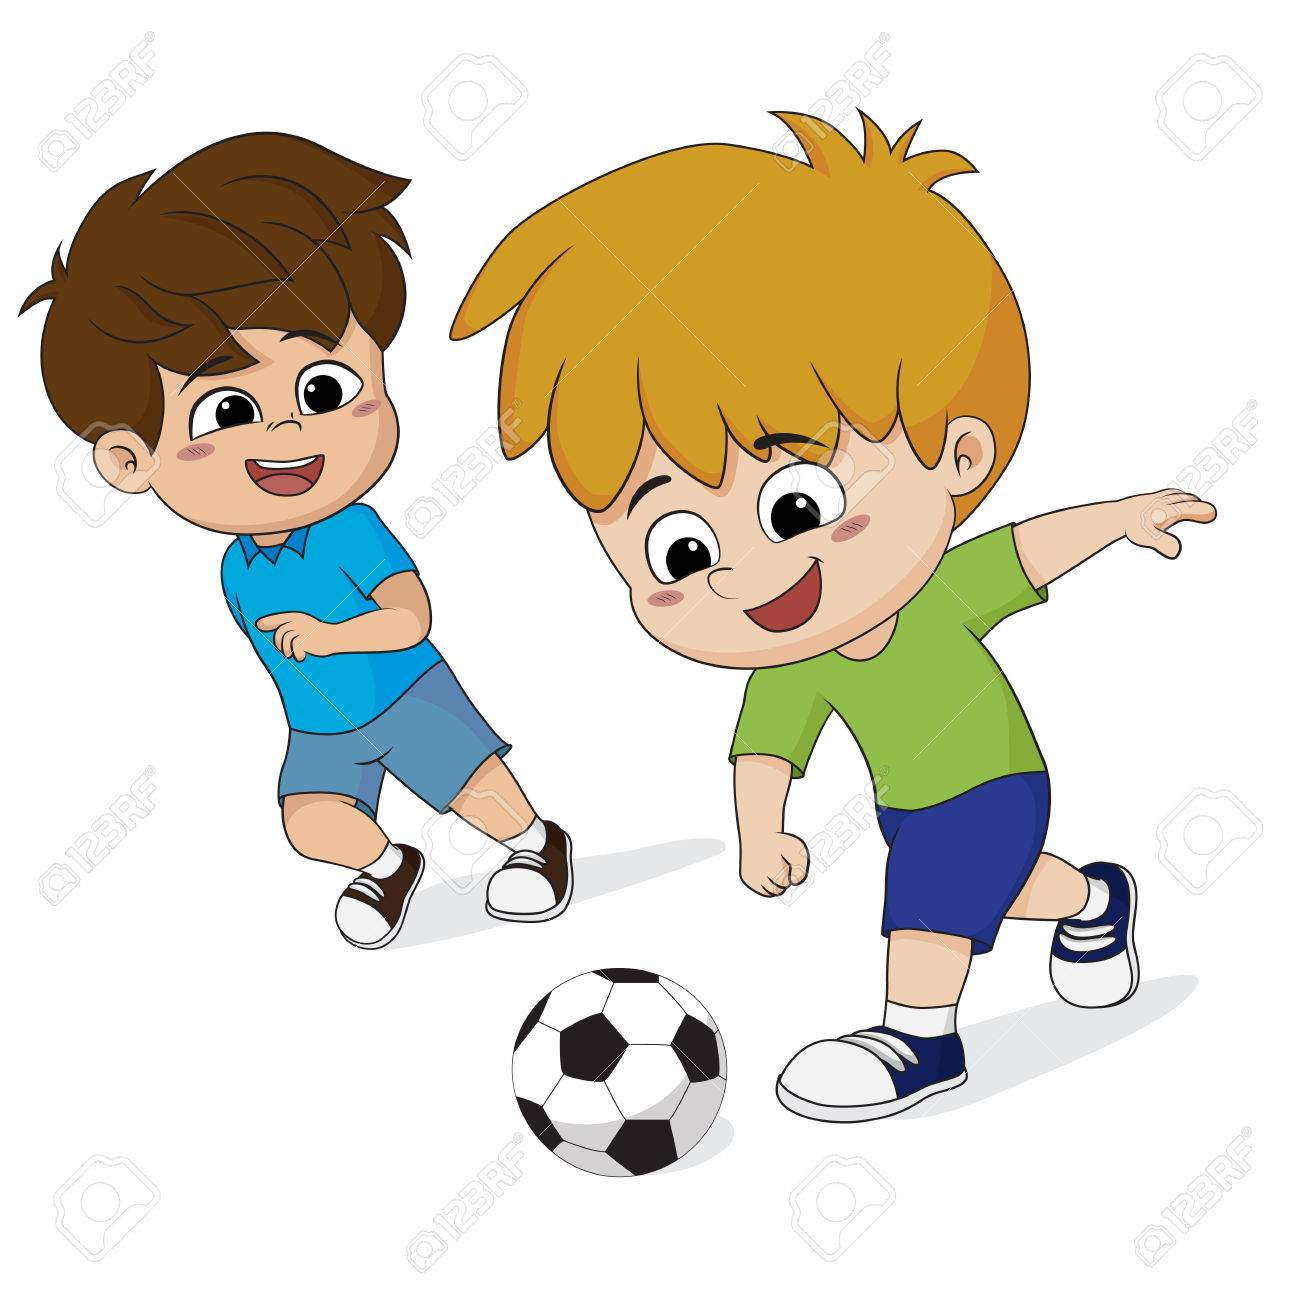 kid play soccer with friends.vector and illustration..